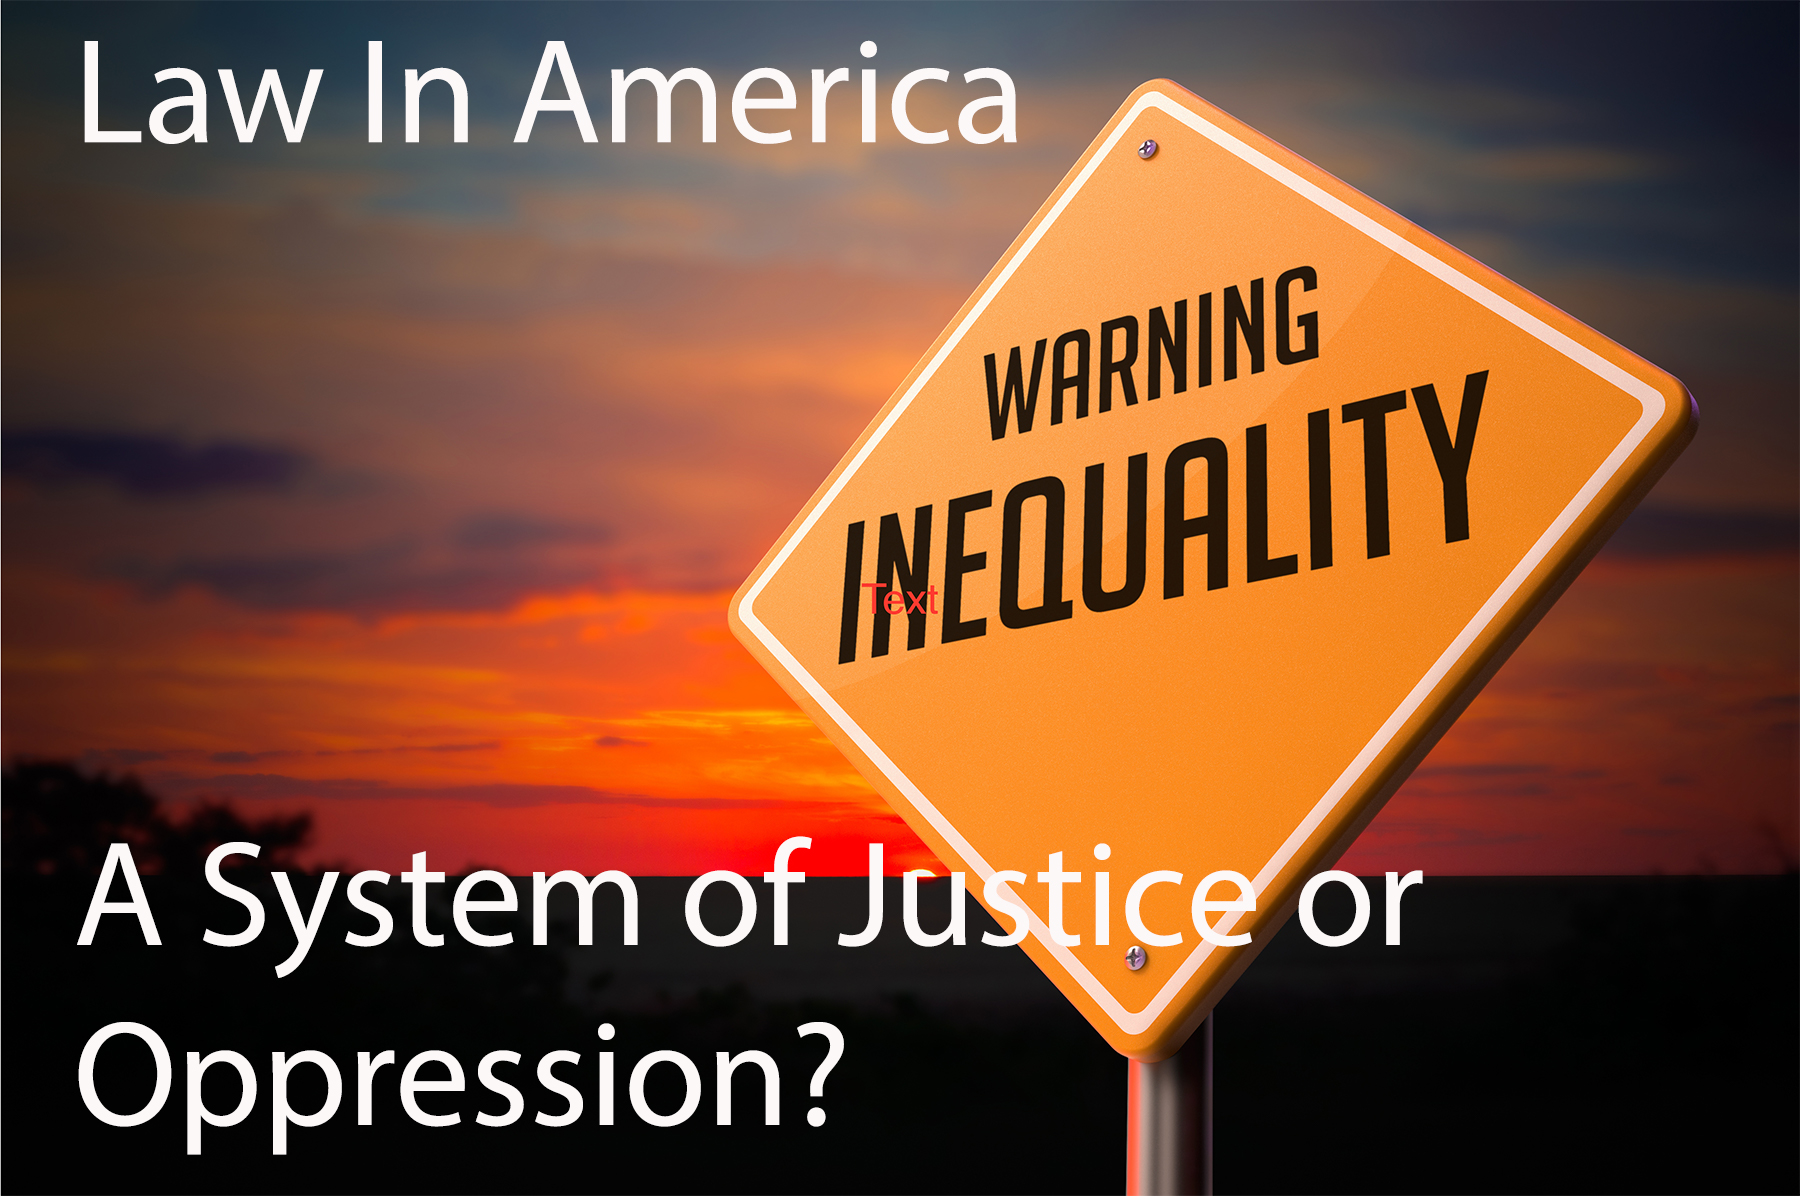 American Law – A System of Justice or Oppression?